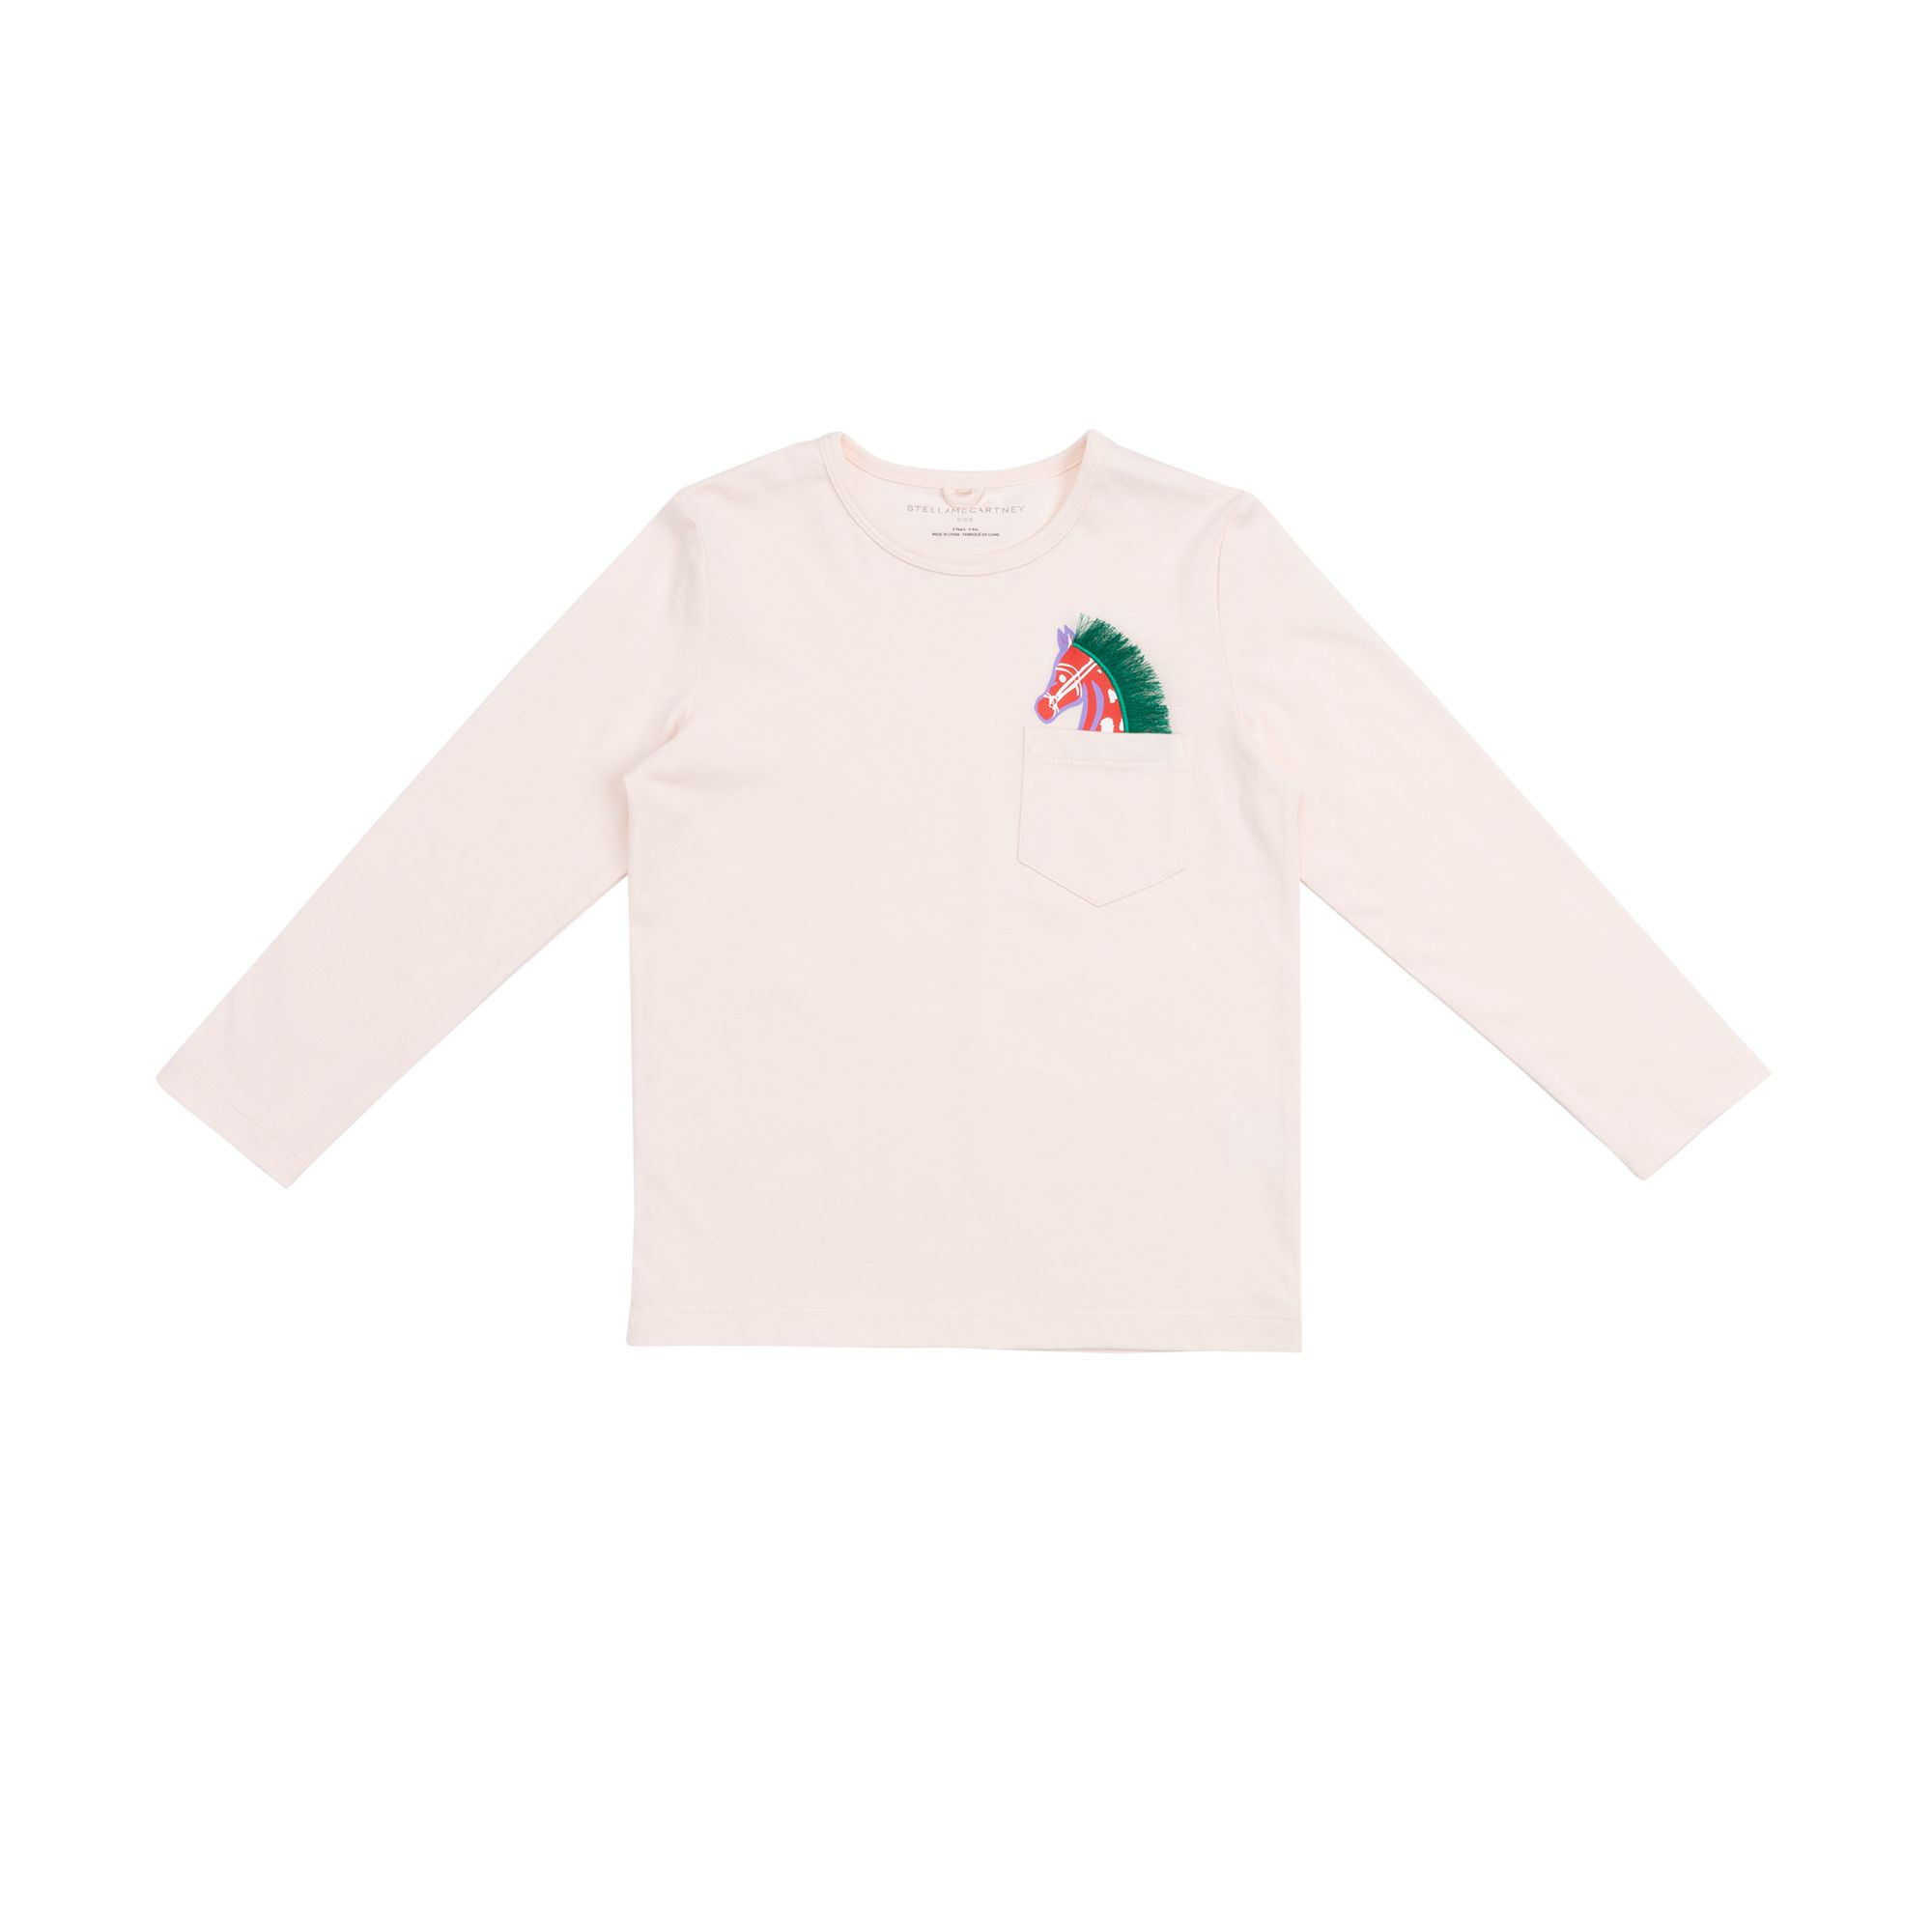 601097 SPJ51 / 9241 WHITE / Kid Girl Ls Tee With Horse Pocket